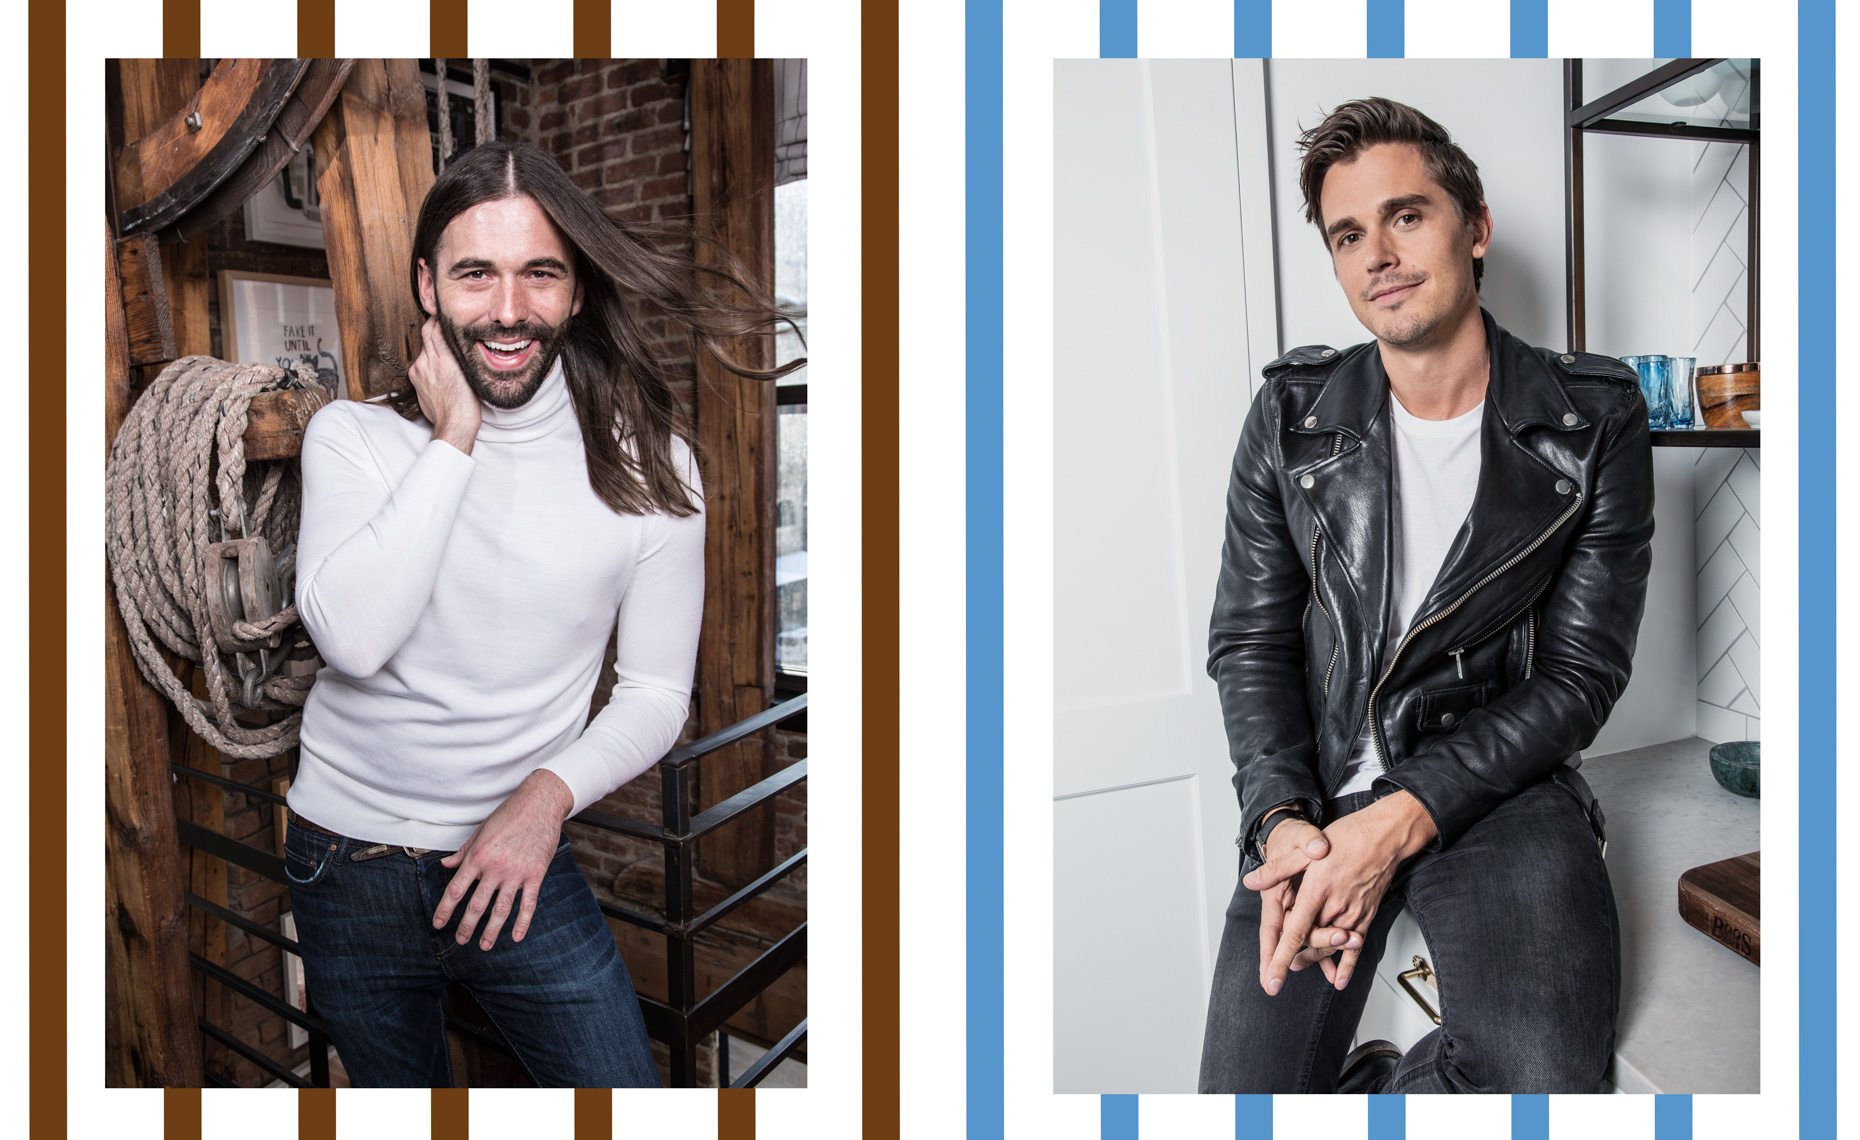 WEB_PRINTIQUE_12x9_QUEEREYE2